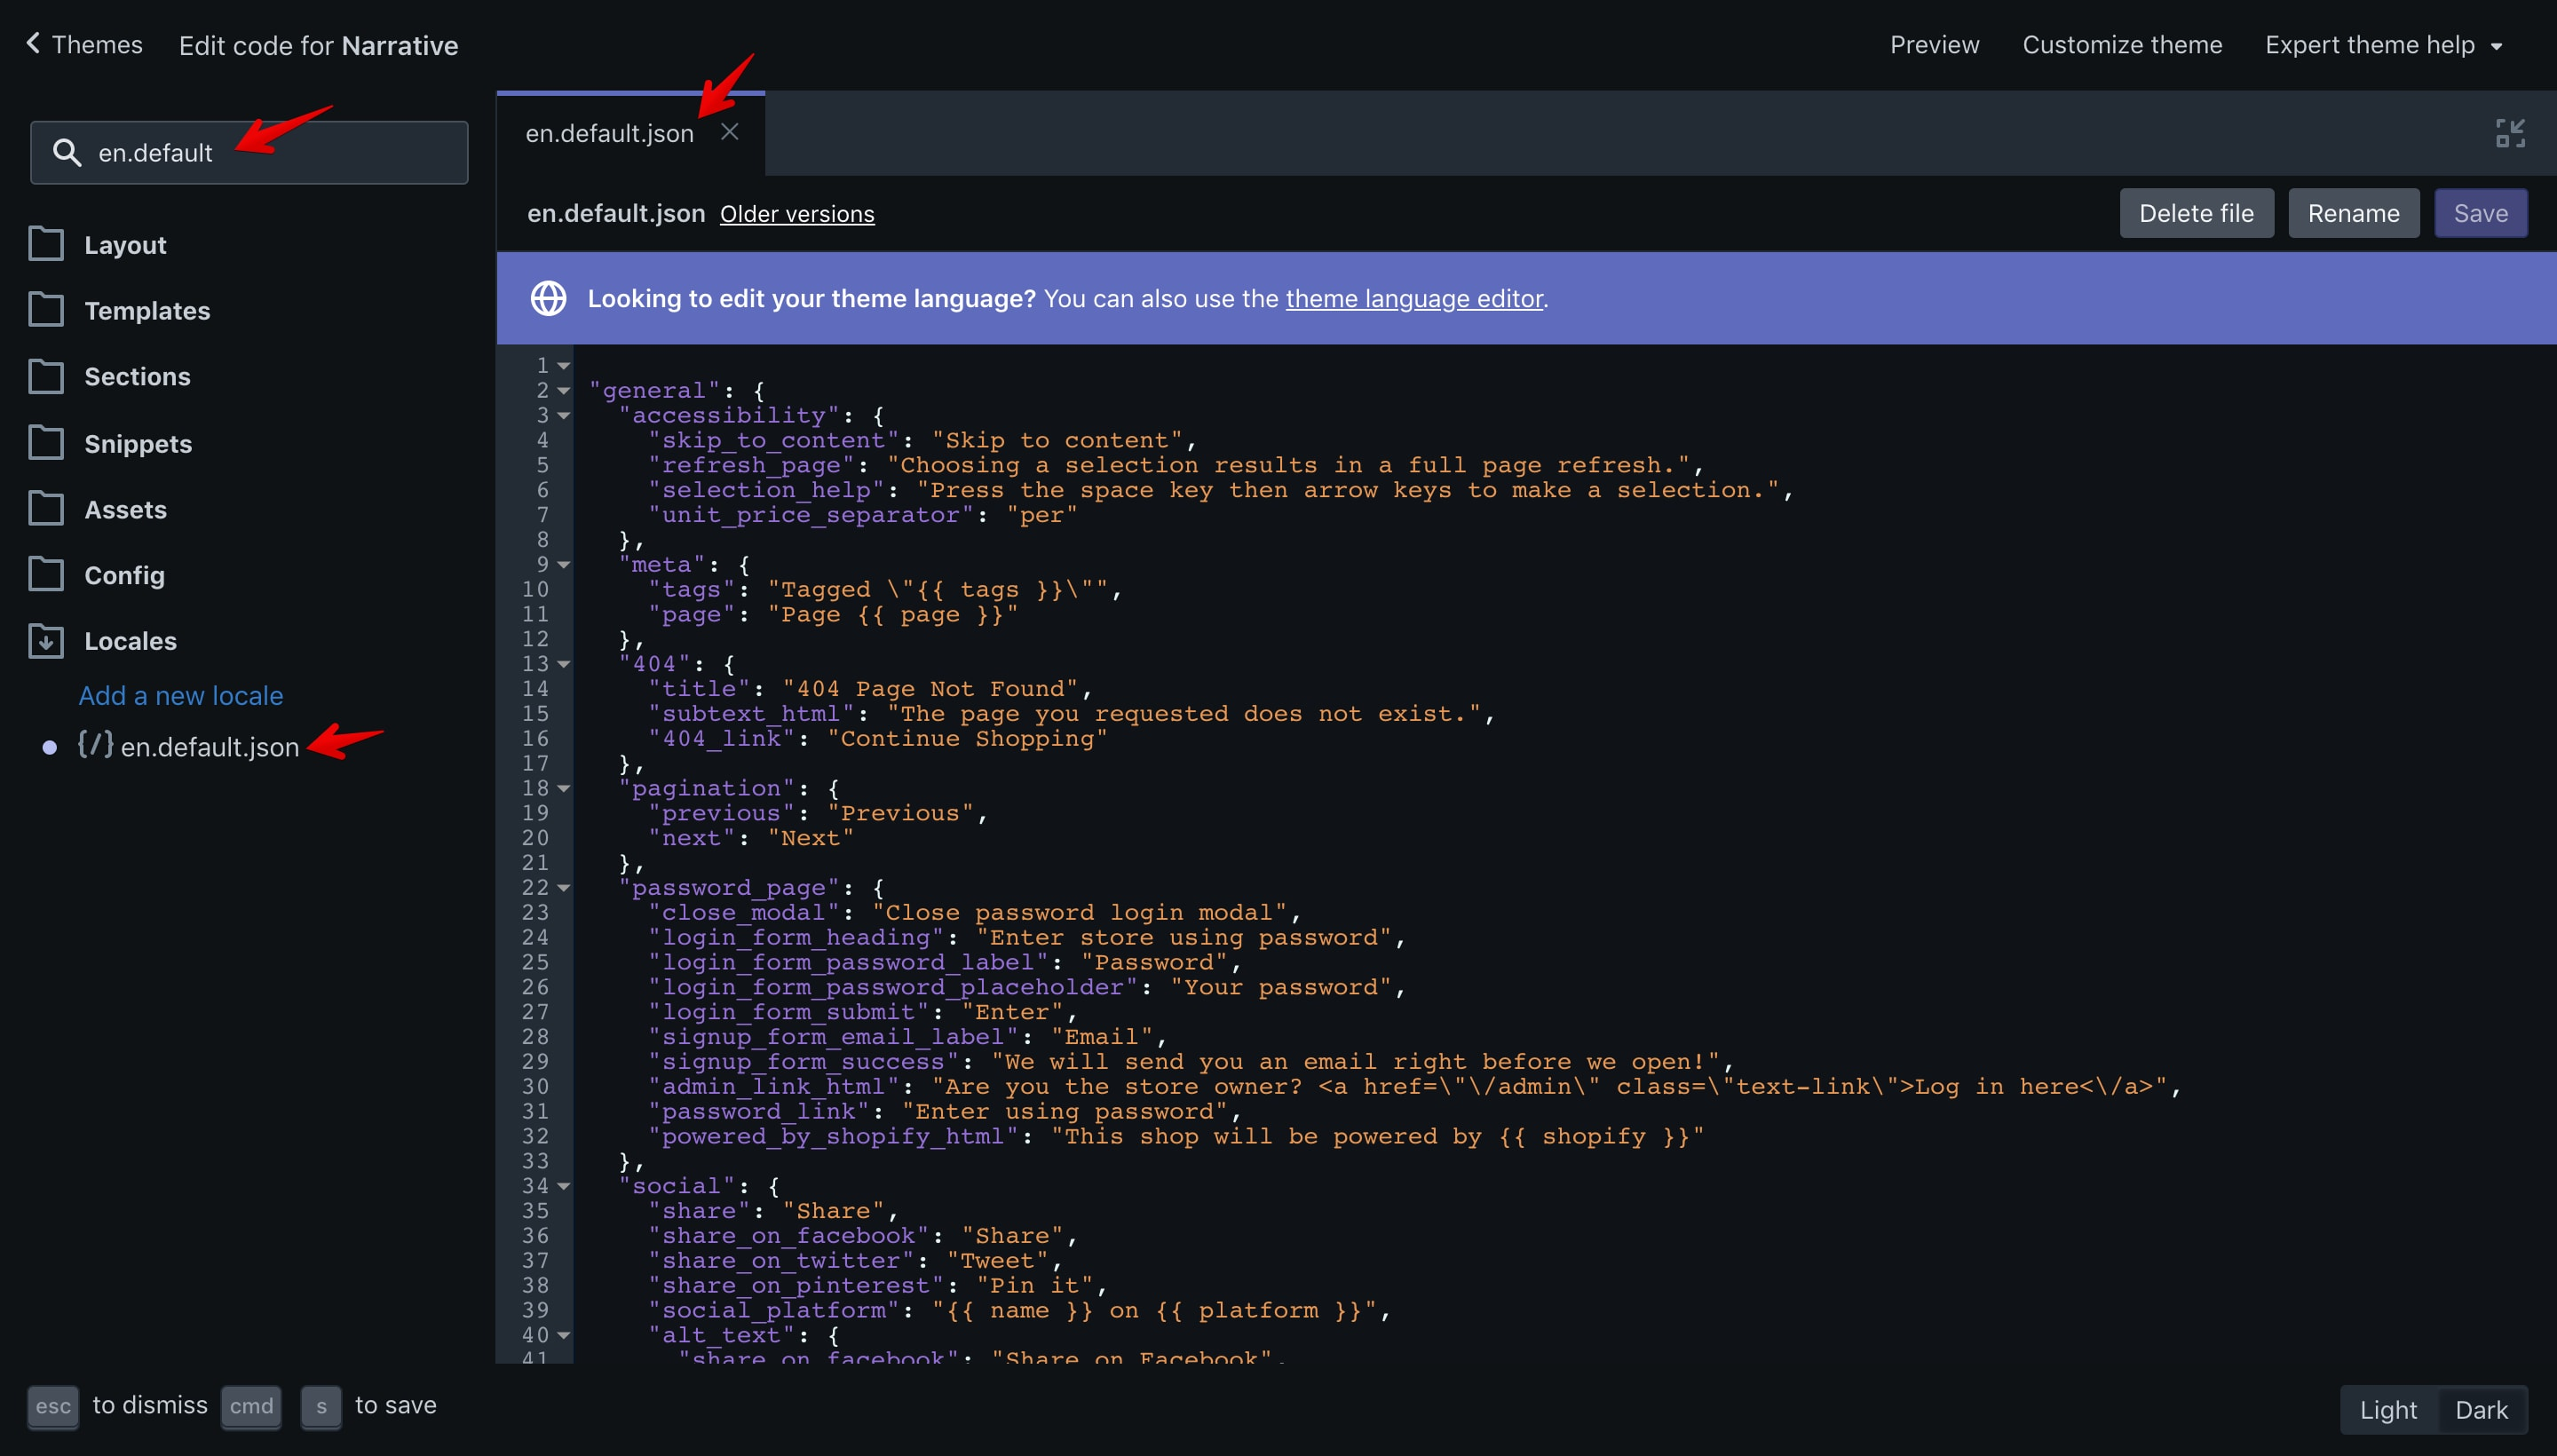 """Narrative theme """"en.default.json"""" file opened in the code editor."""